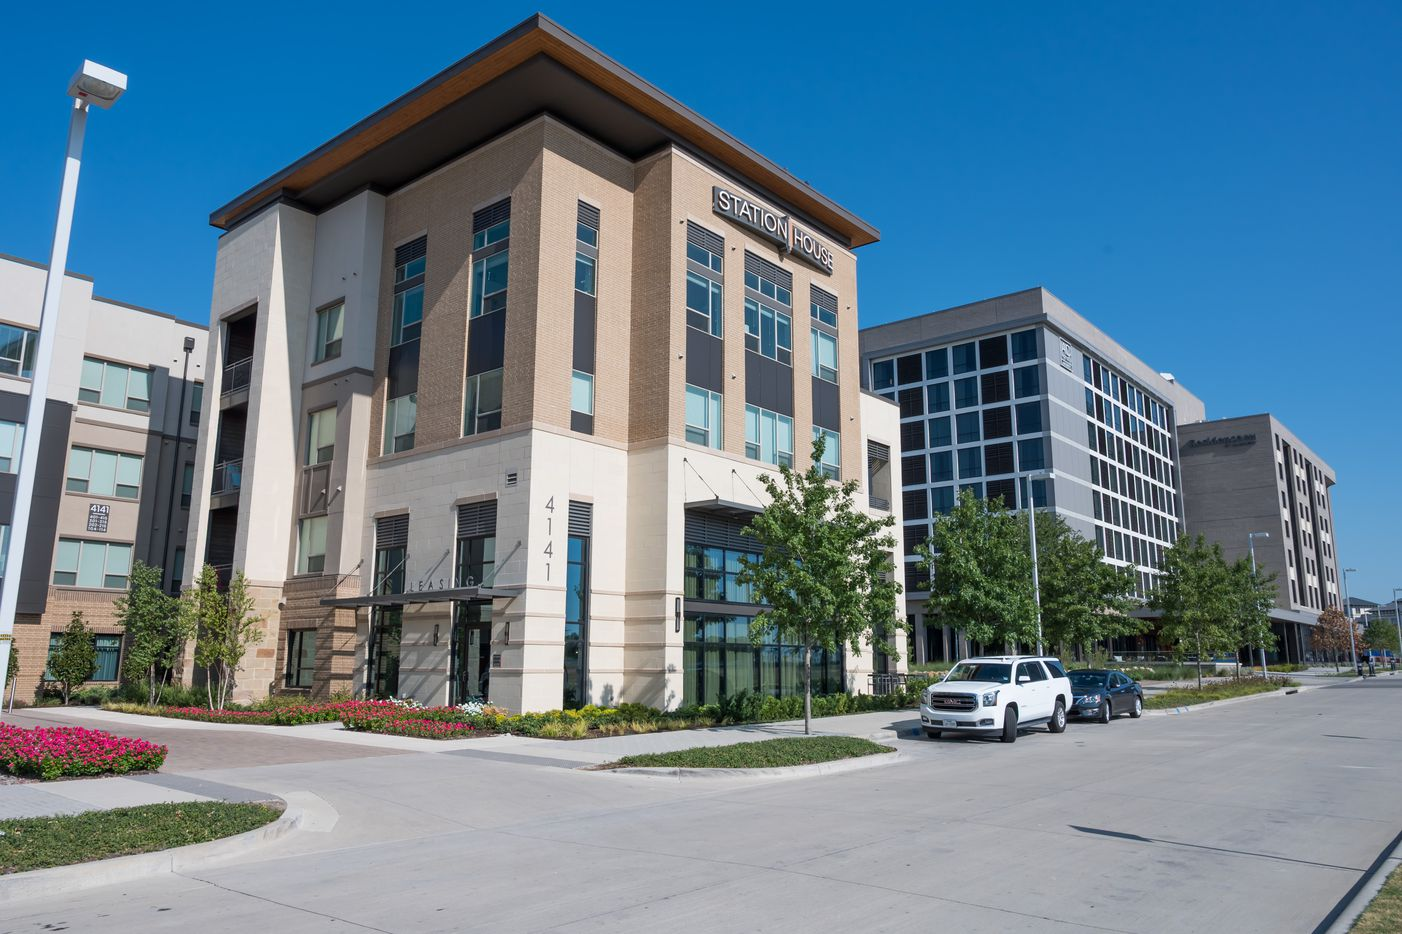 The Station House apartments in Frisco Station are 95% leased.